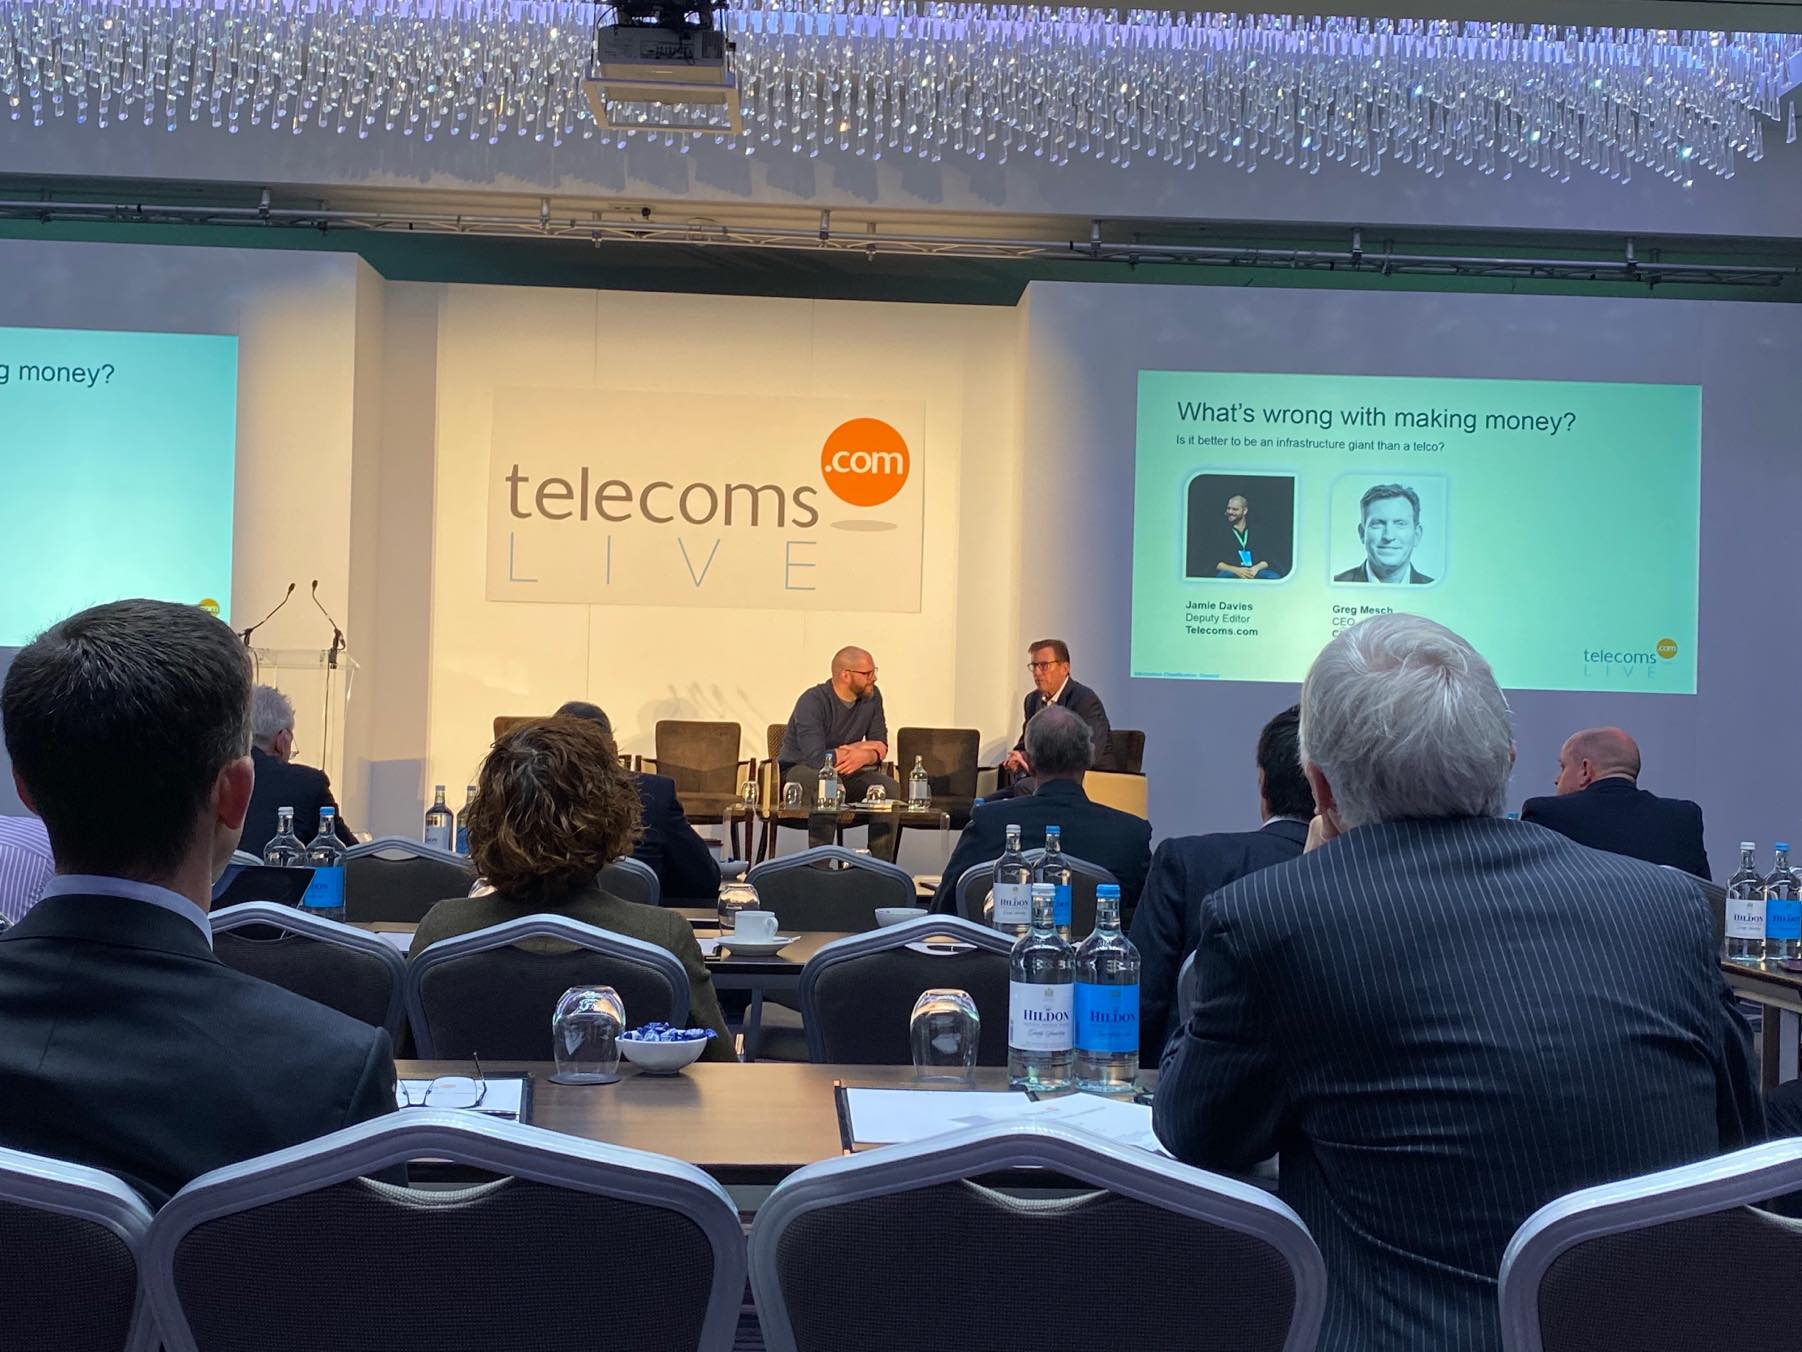 How it unfolded: Telecoms.com LIVE